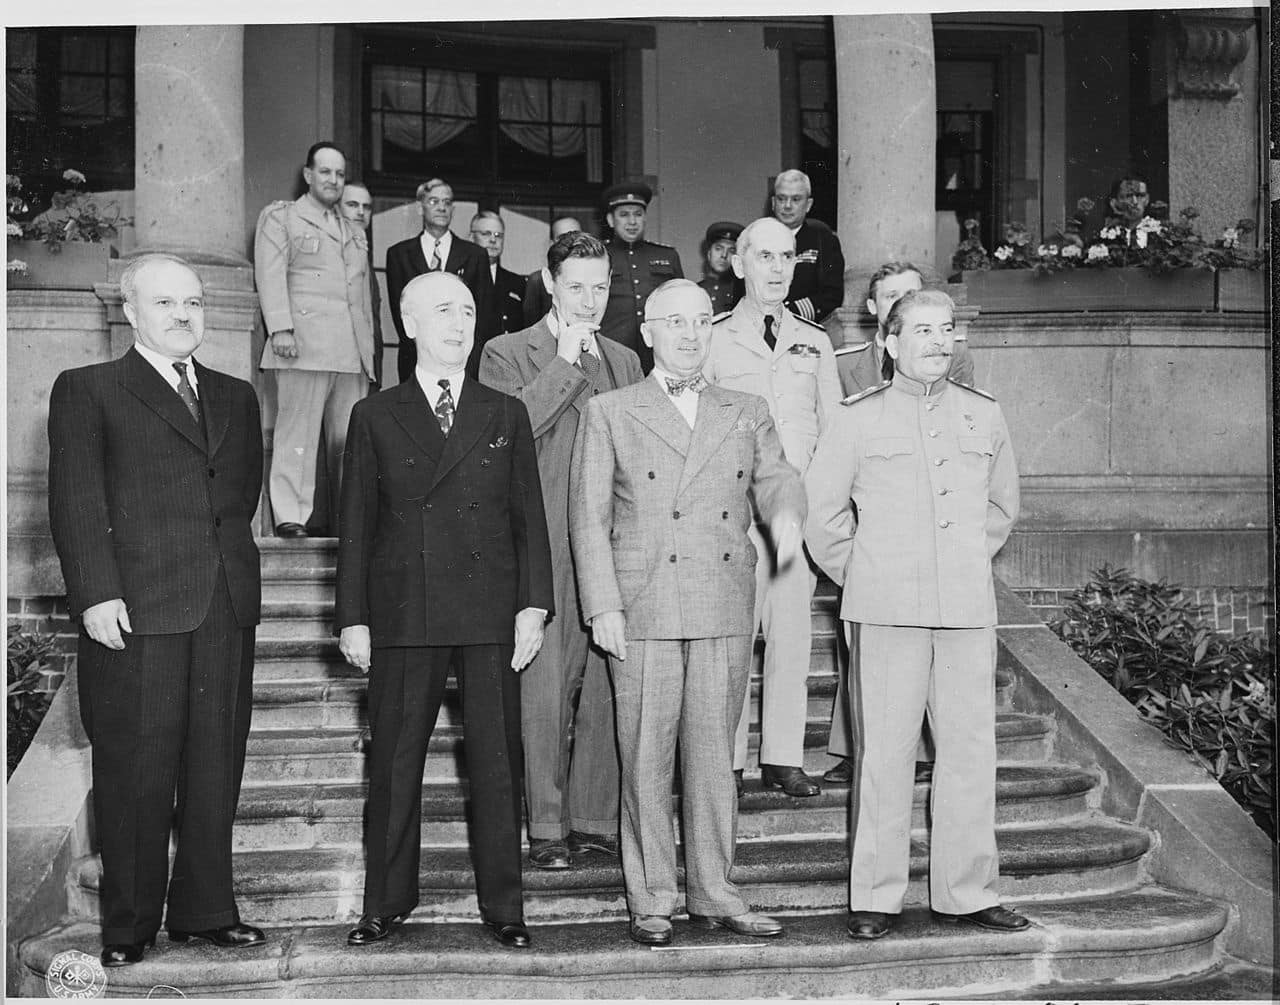 The Potsdam Conference - July 17th 1945 - Truman and Stalin meet for the first time